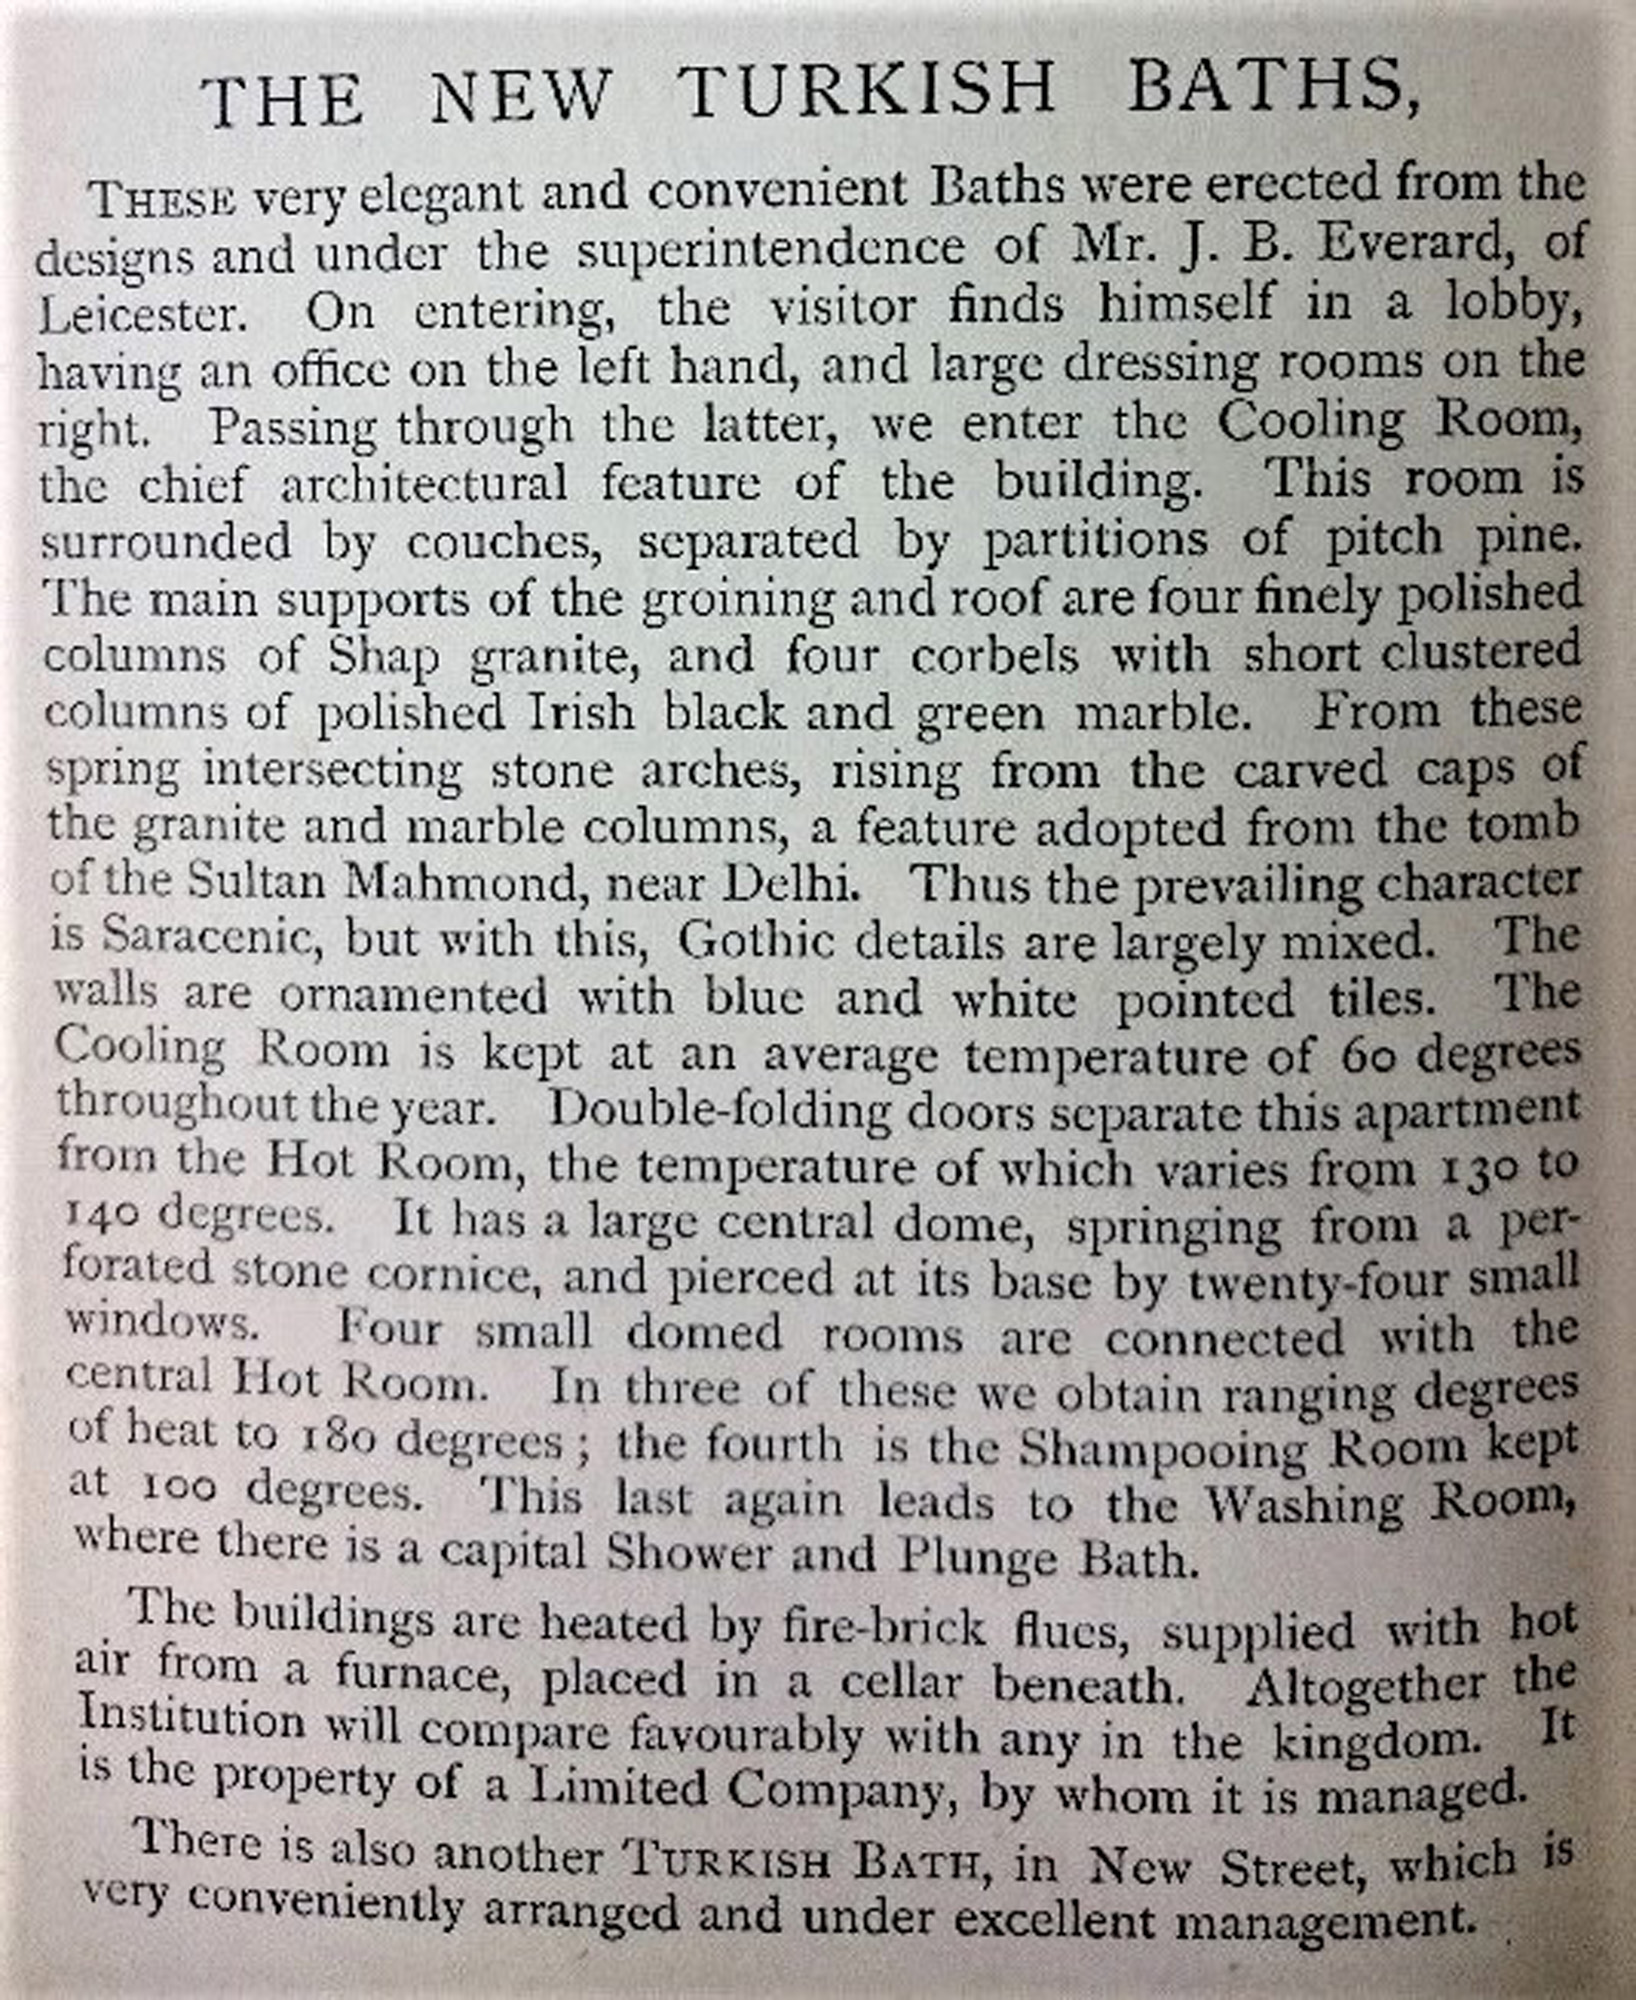 A description of the Turkish baths from Spencer's New Guide to Leicester -